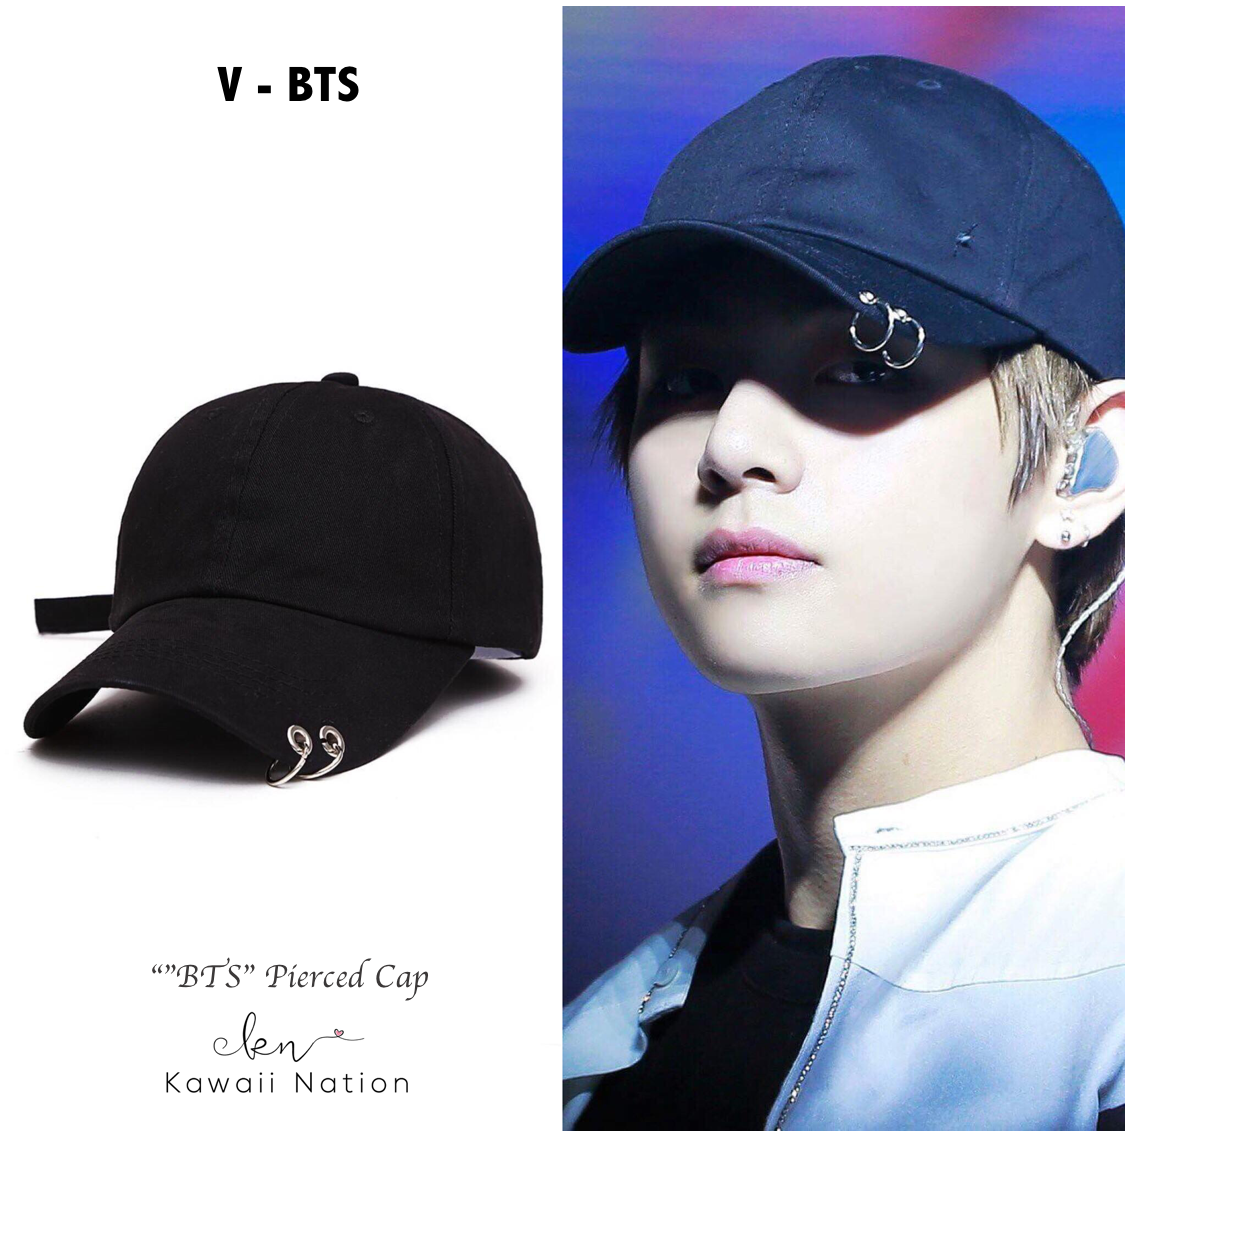 Idol Pierced Cap Bts Inspired Outfits Bts Clothing Kpop Fashion Outfits